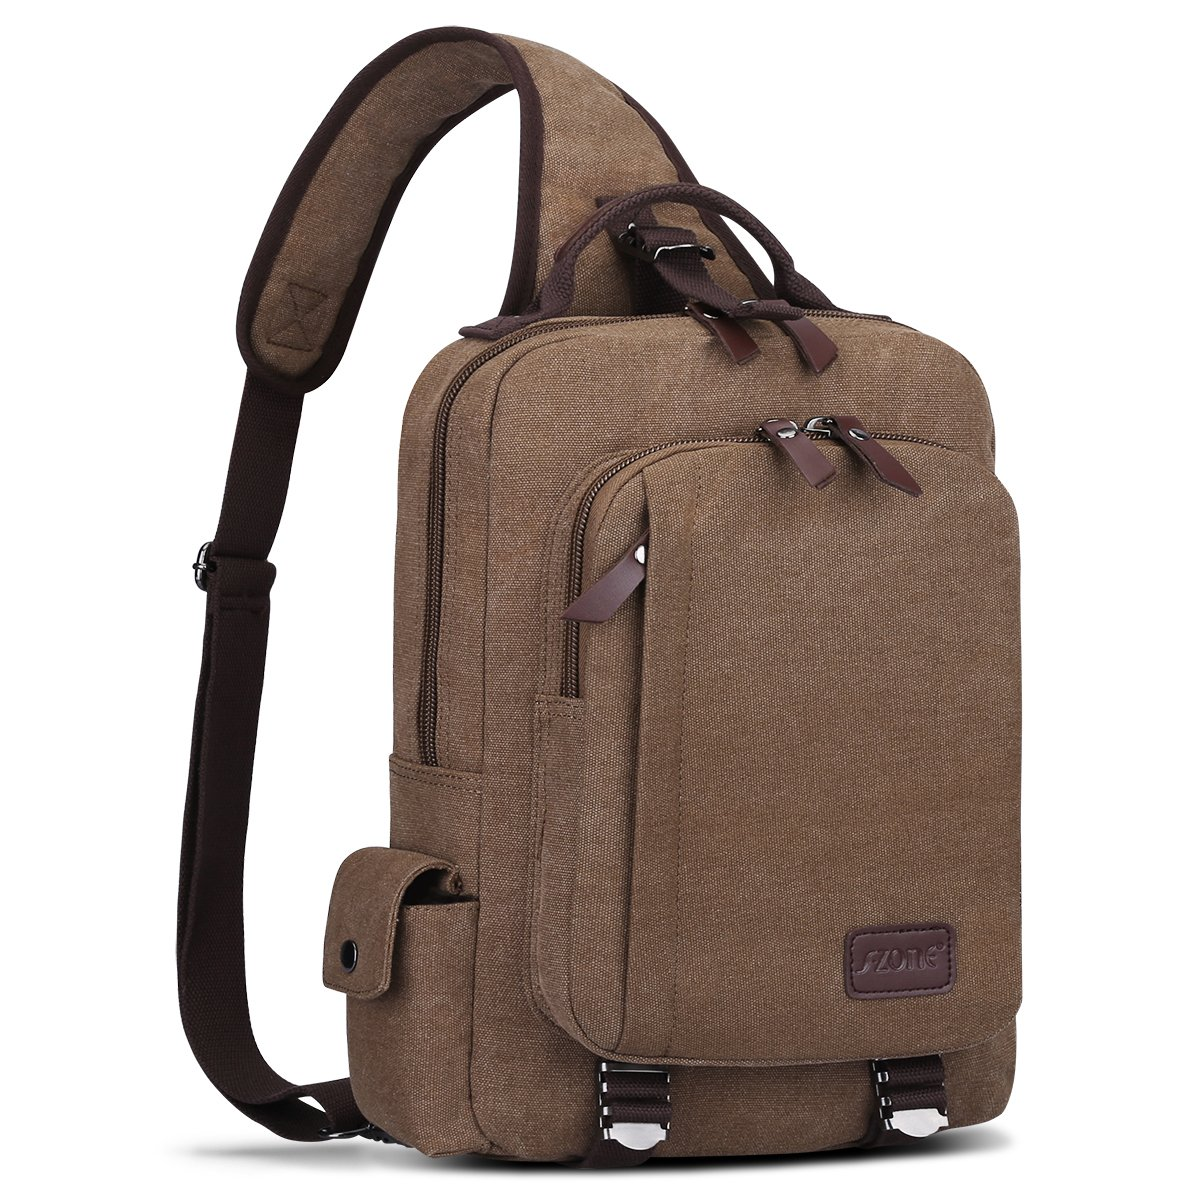 ebfdb0e3d542 S-Zone Sling Bag for Men Chest Shoulder Gym Backpack Sack Satchel Outdoor  Crossbody Pack (Coffee): Amazon.ca: Luggage & Bags